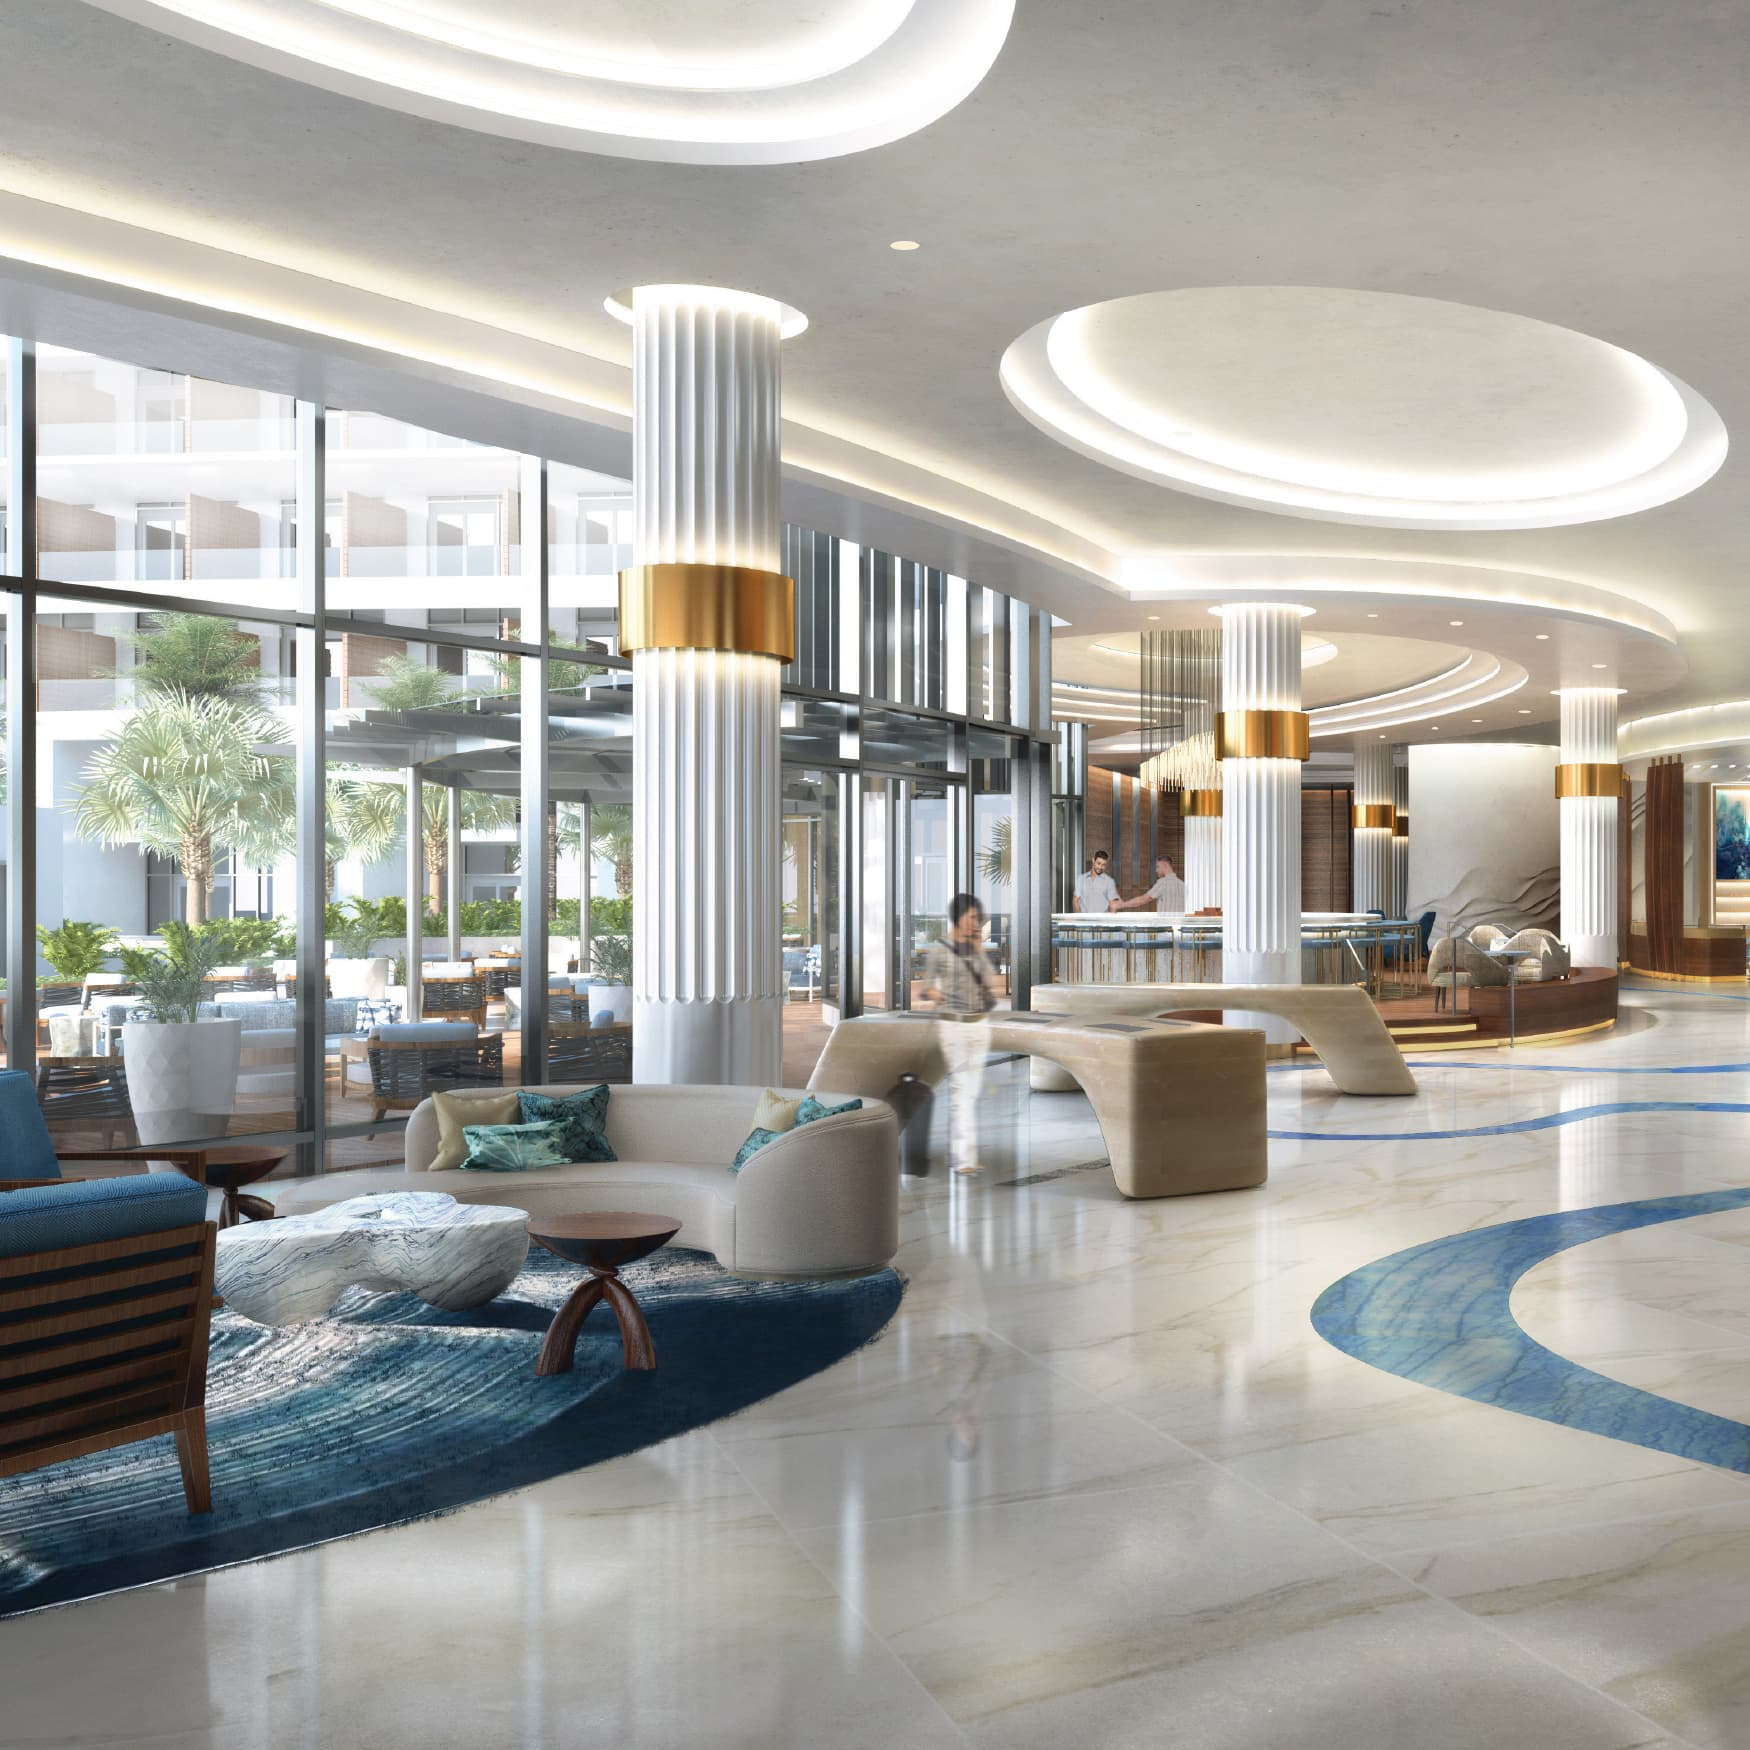 The lobby design of Pier Sixty-Six Hotel & Marina, a mixed-use residential development in Fort Lauderdale, Florida.